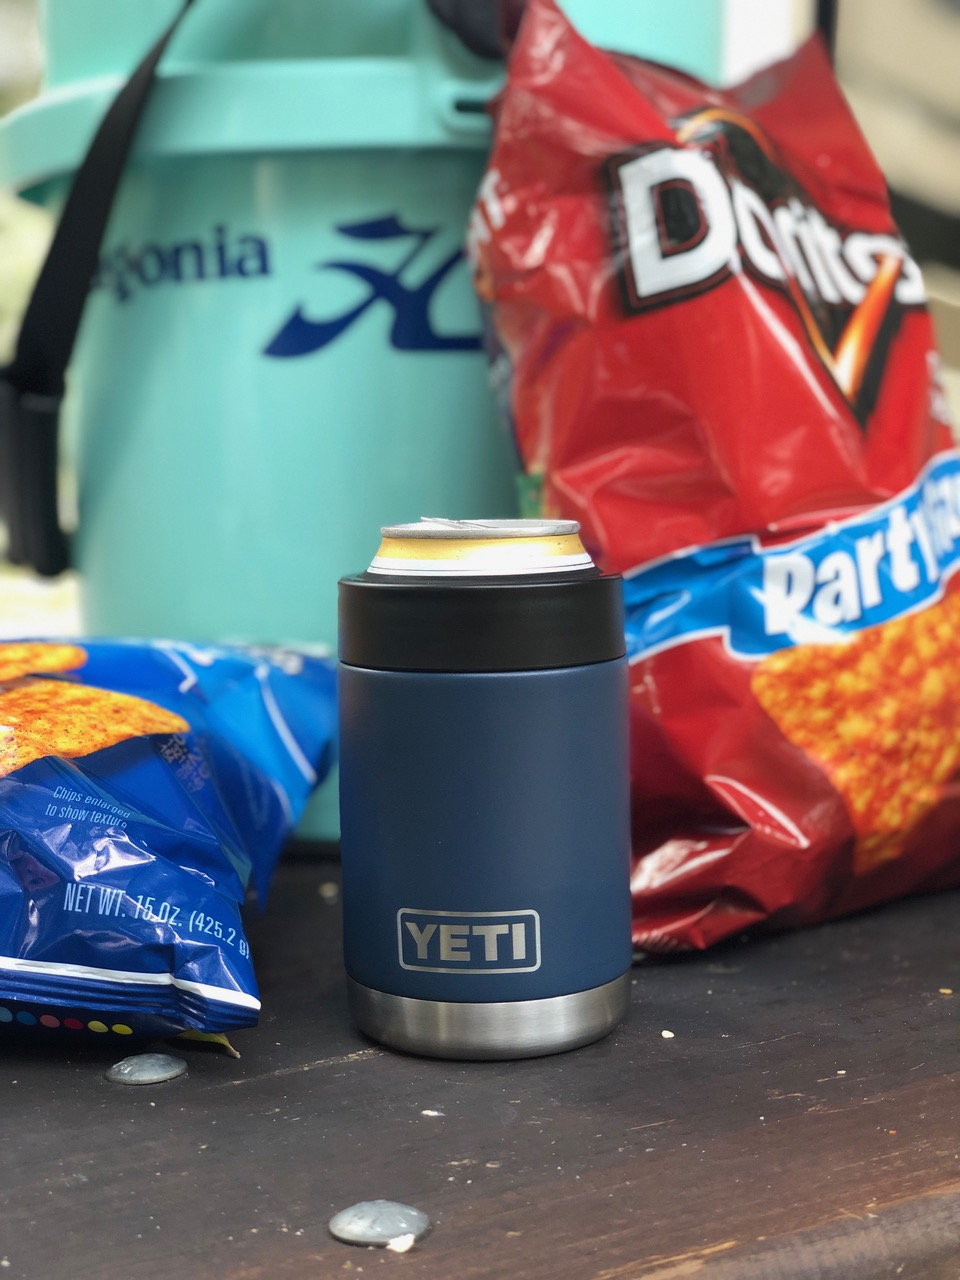 Two YETI Rambler Colster On Table With YETI Loadout Bucket